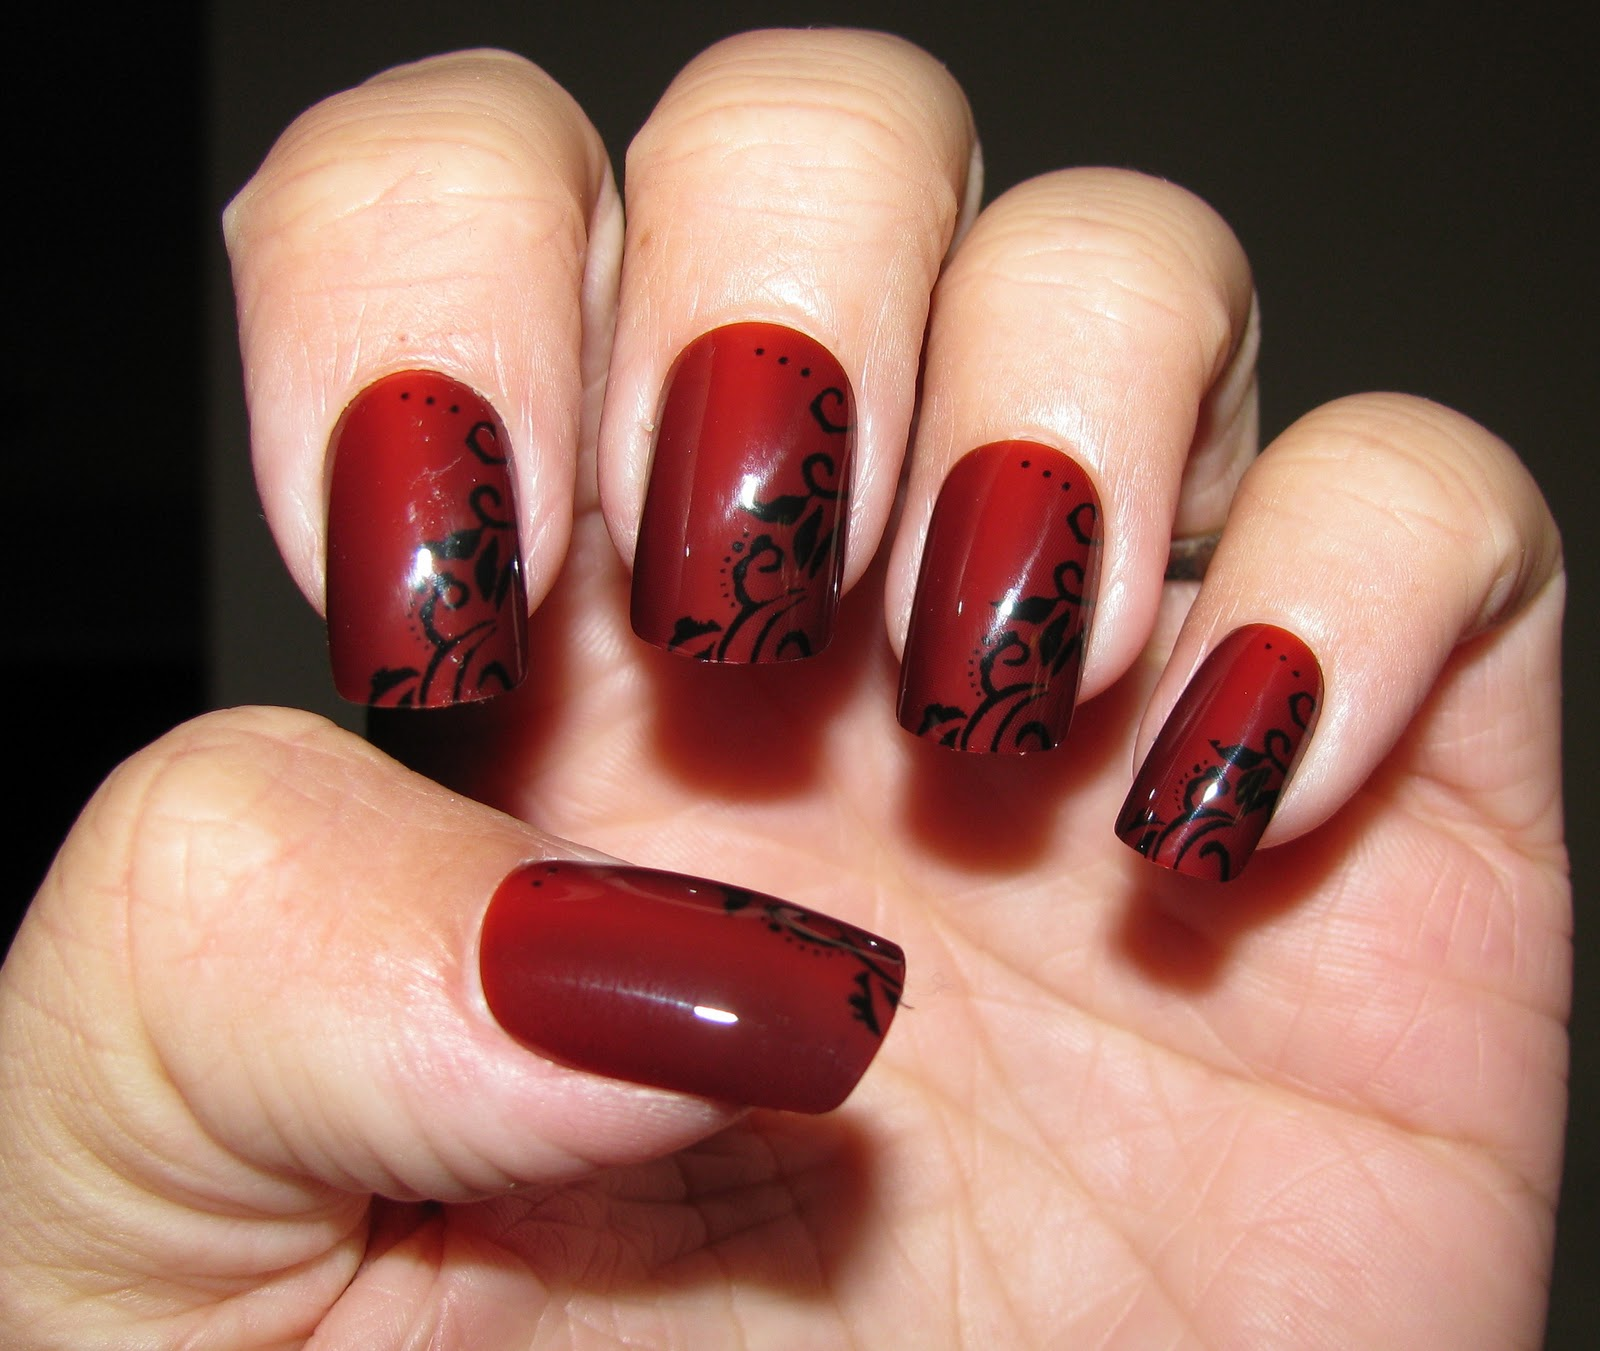 Nail\'d & Polish\'d: Kiss Halloween Nails